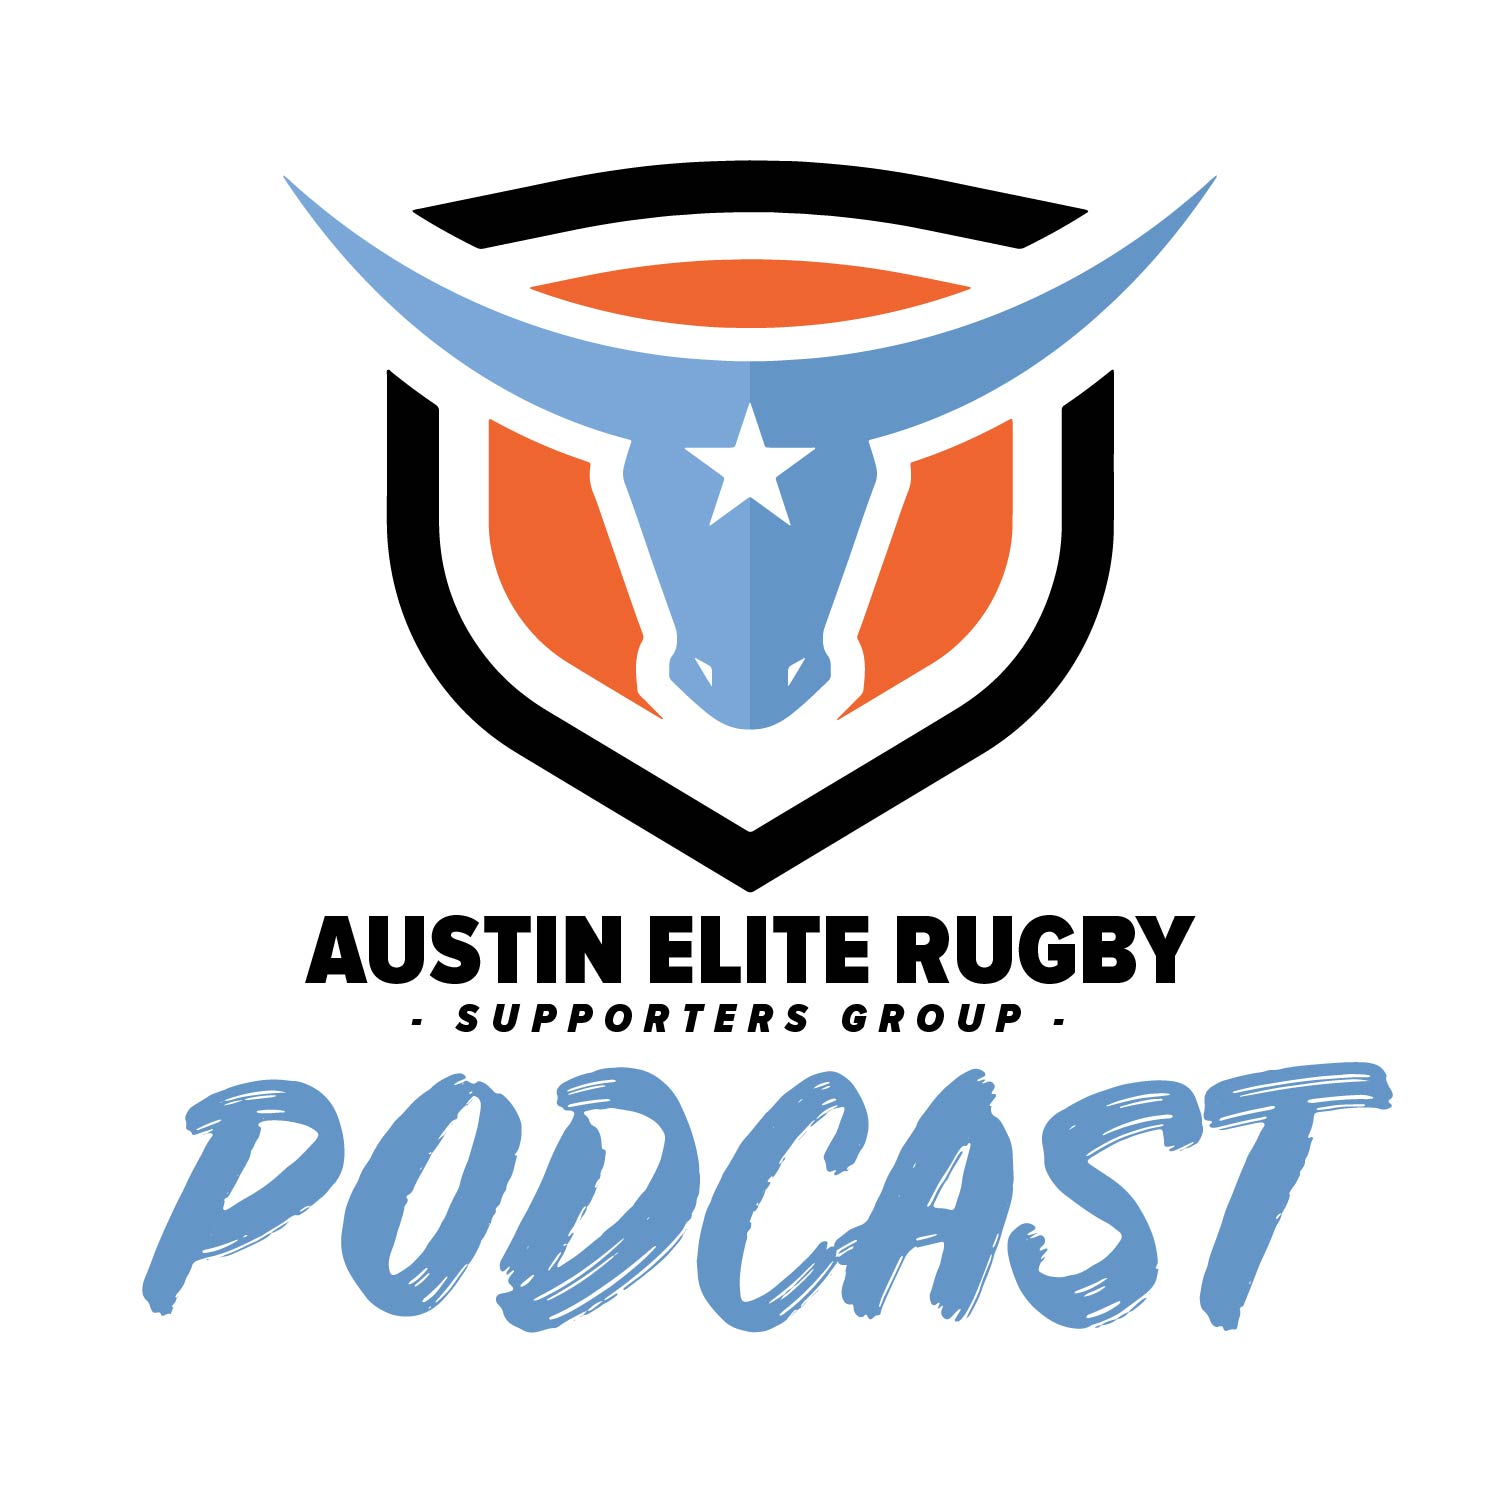 Austin Elite Rugby Supporters Group